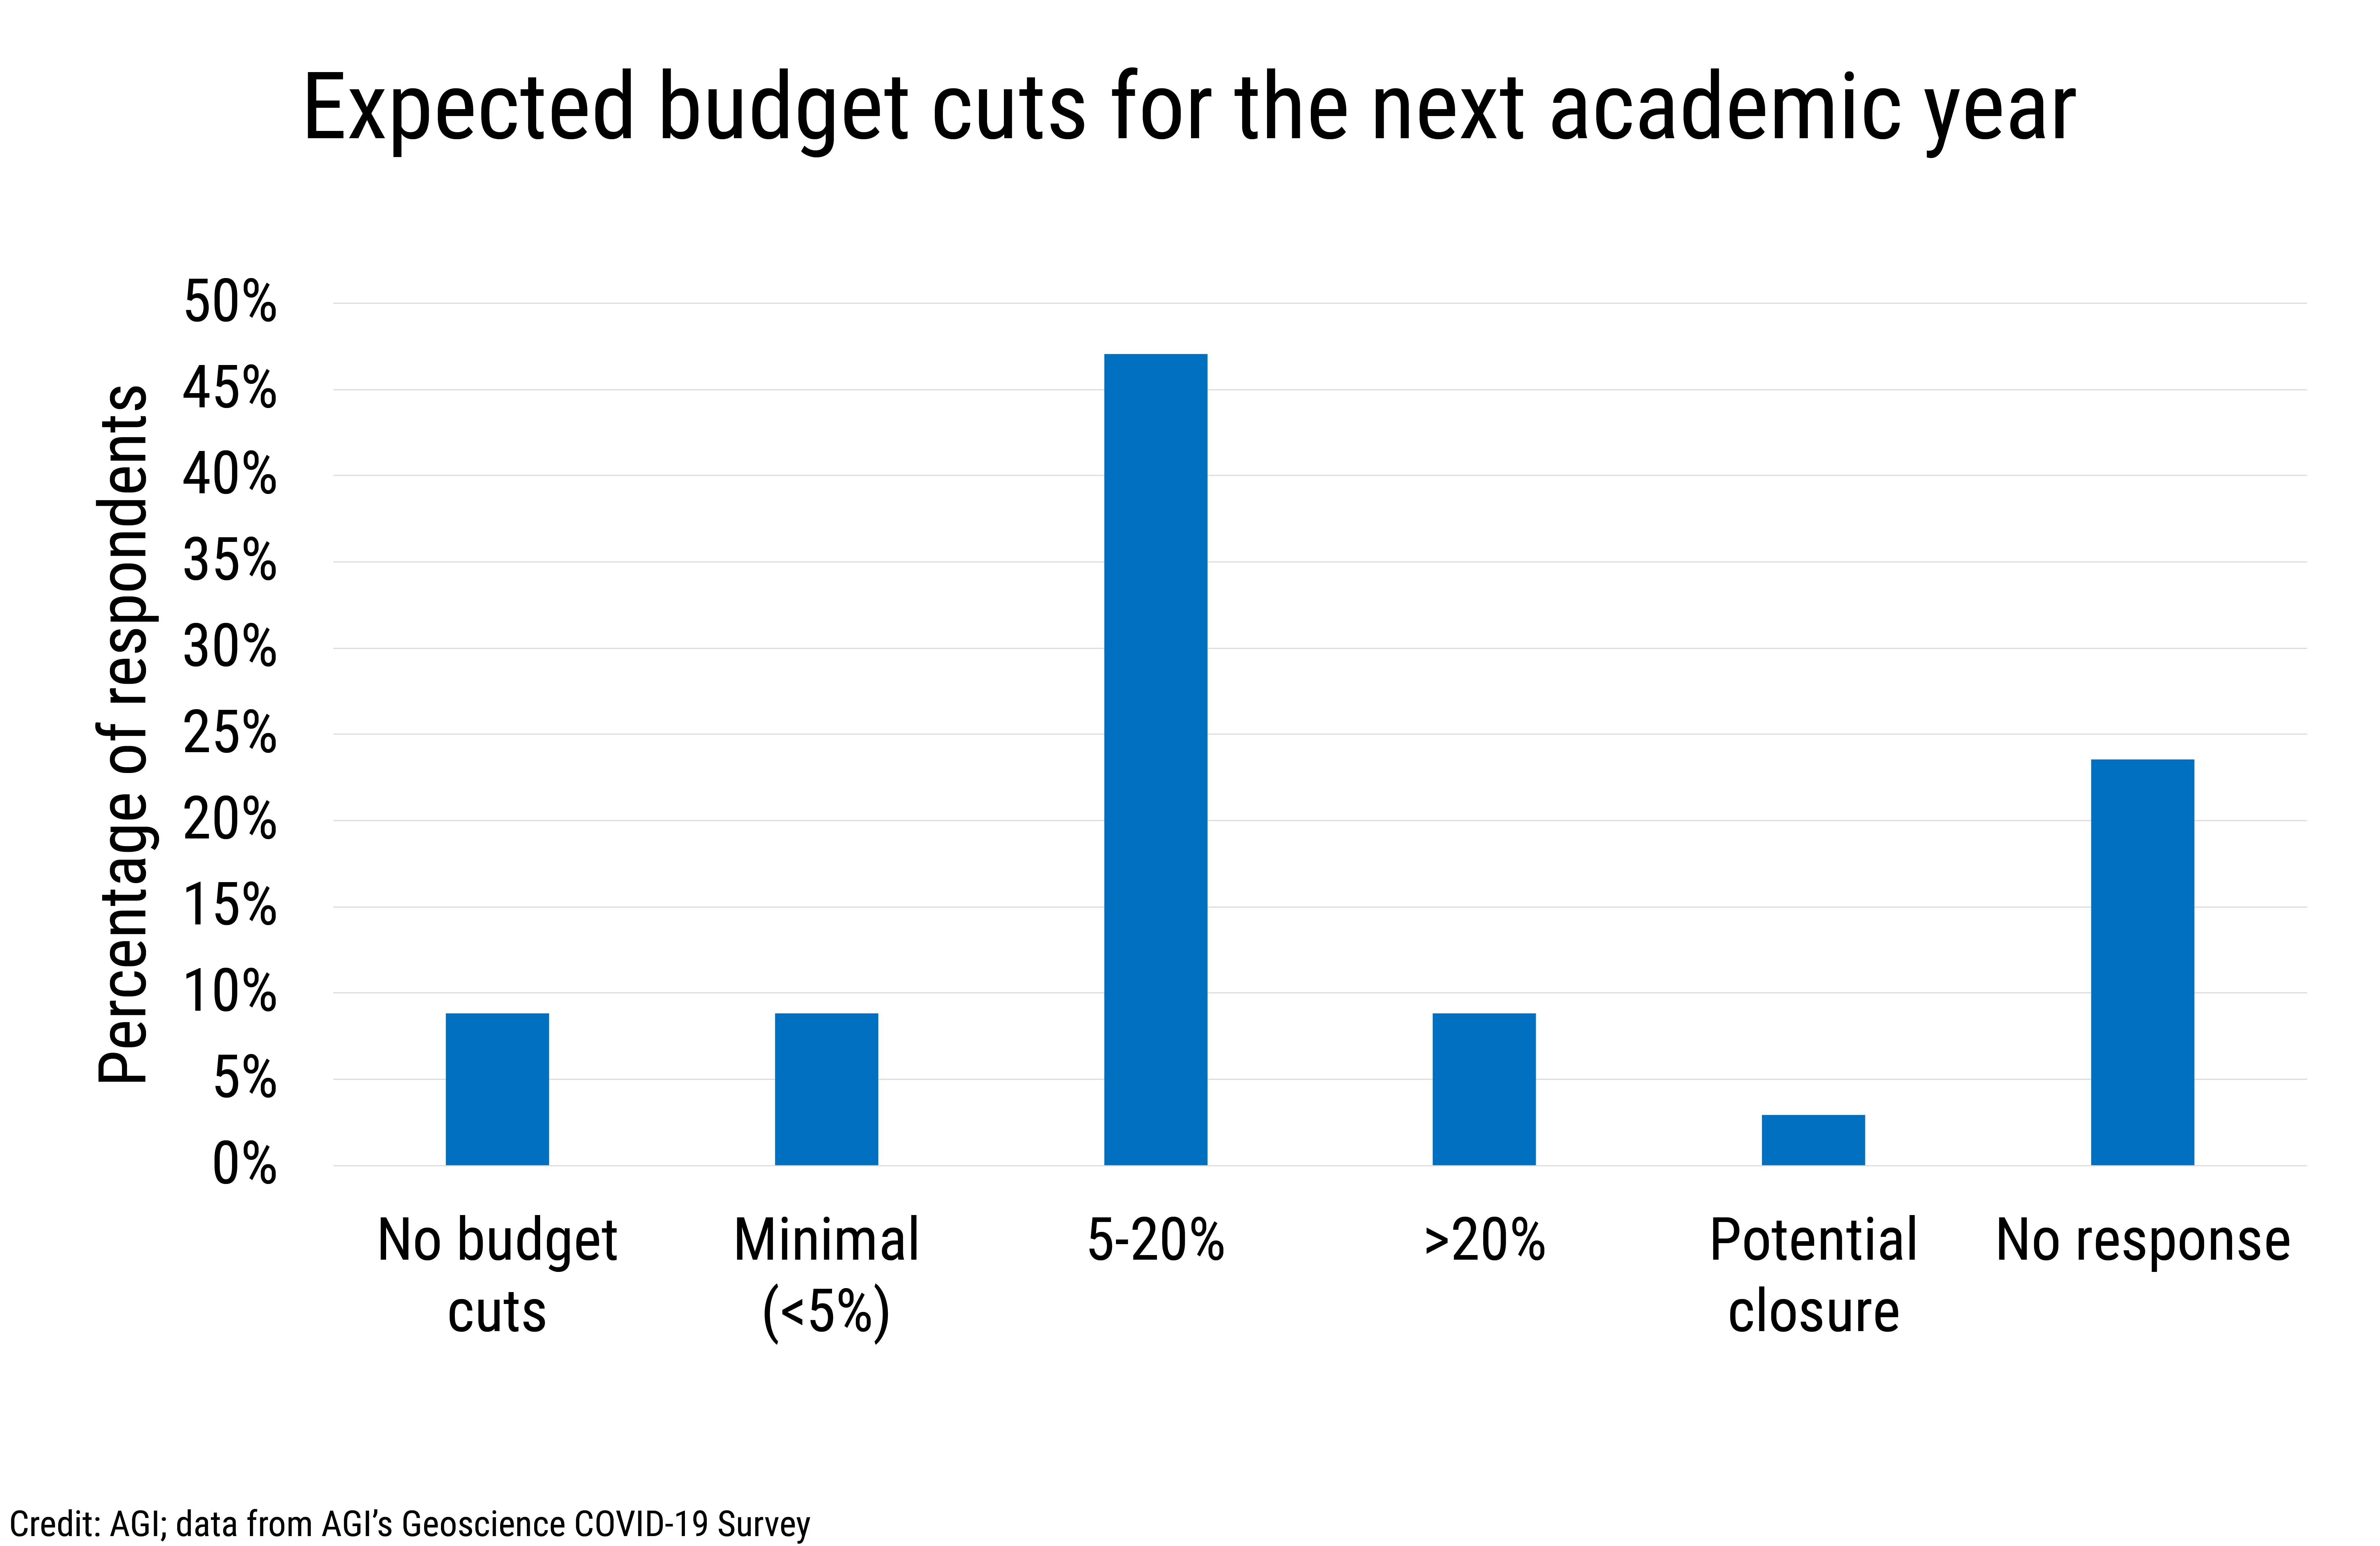 Data Brief 2020-007 chart 01: Expected budget cuts for the next academic year (credit: AGI)